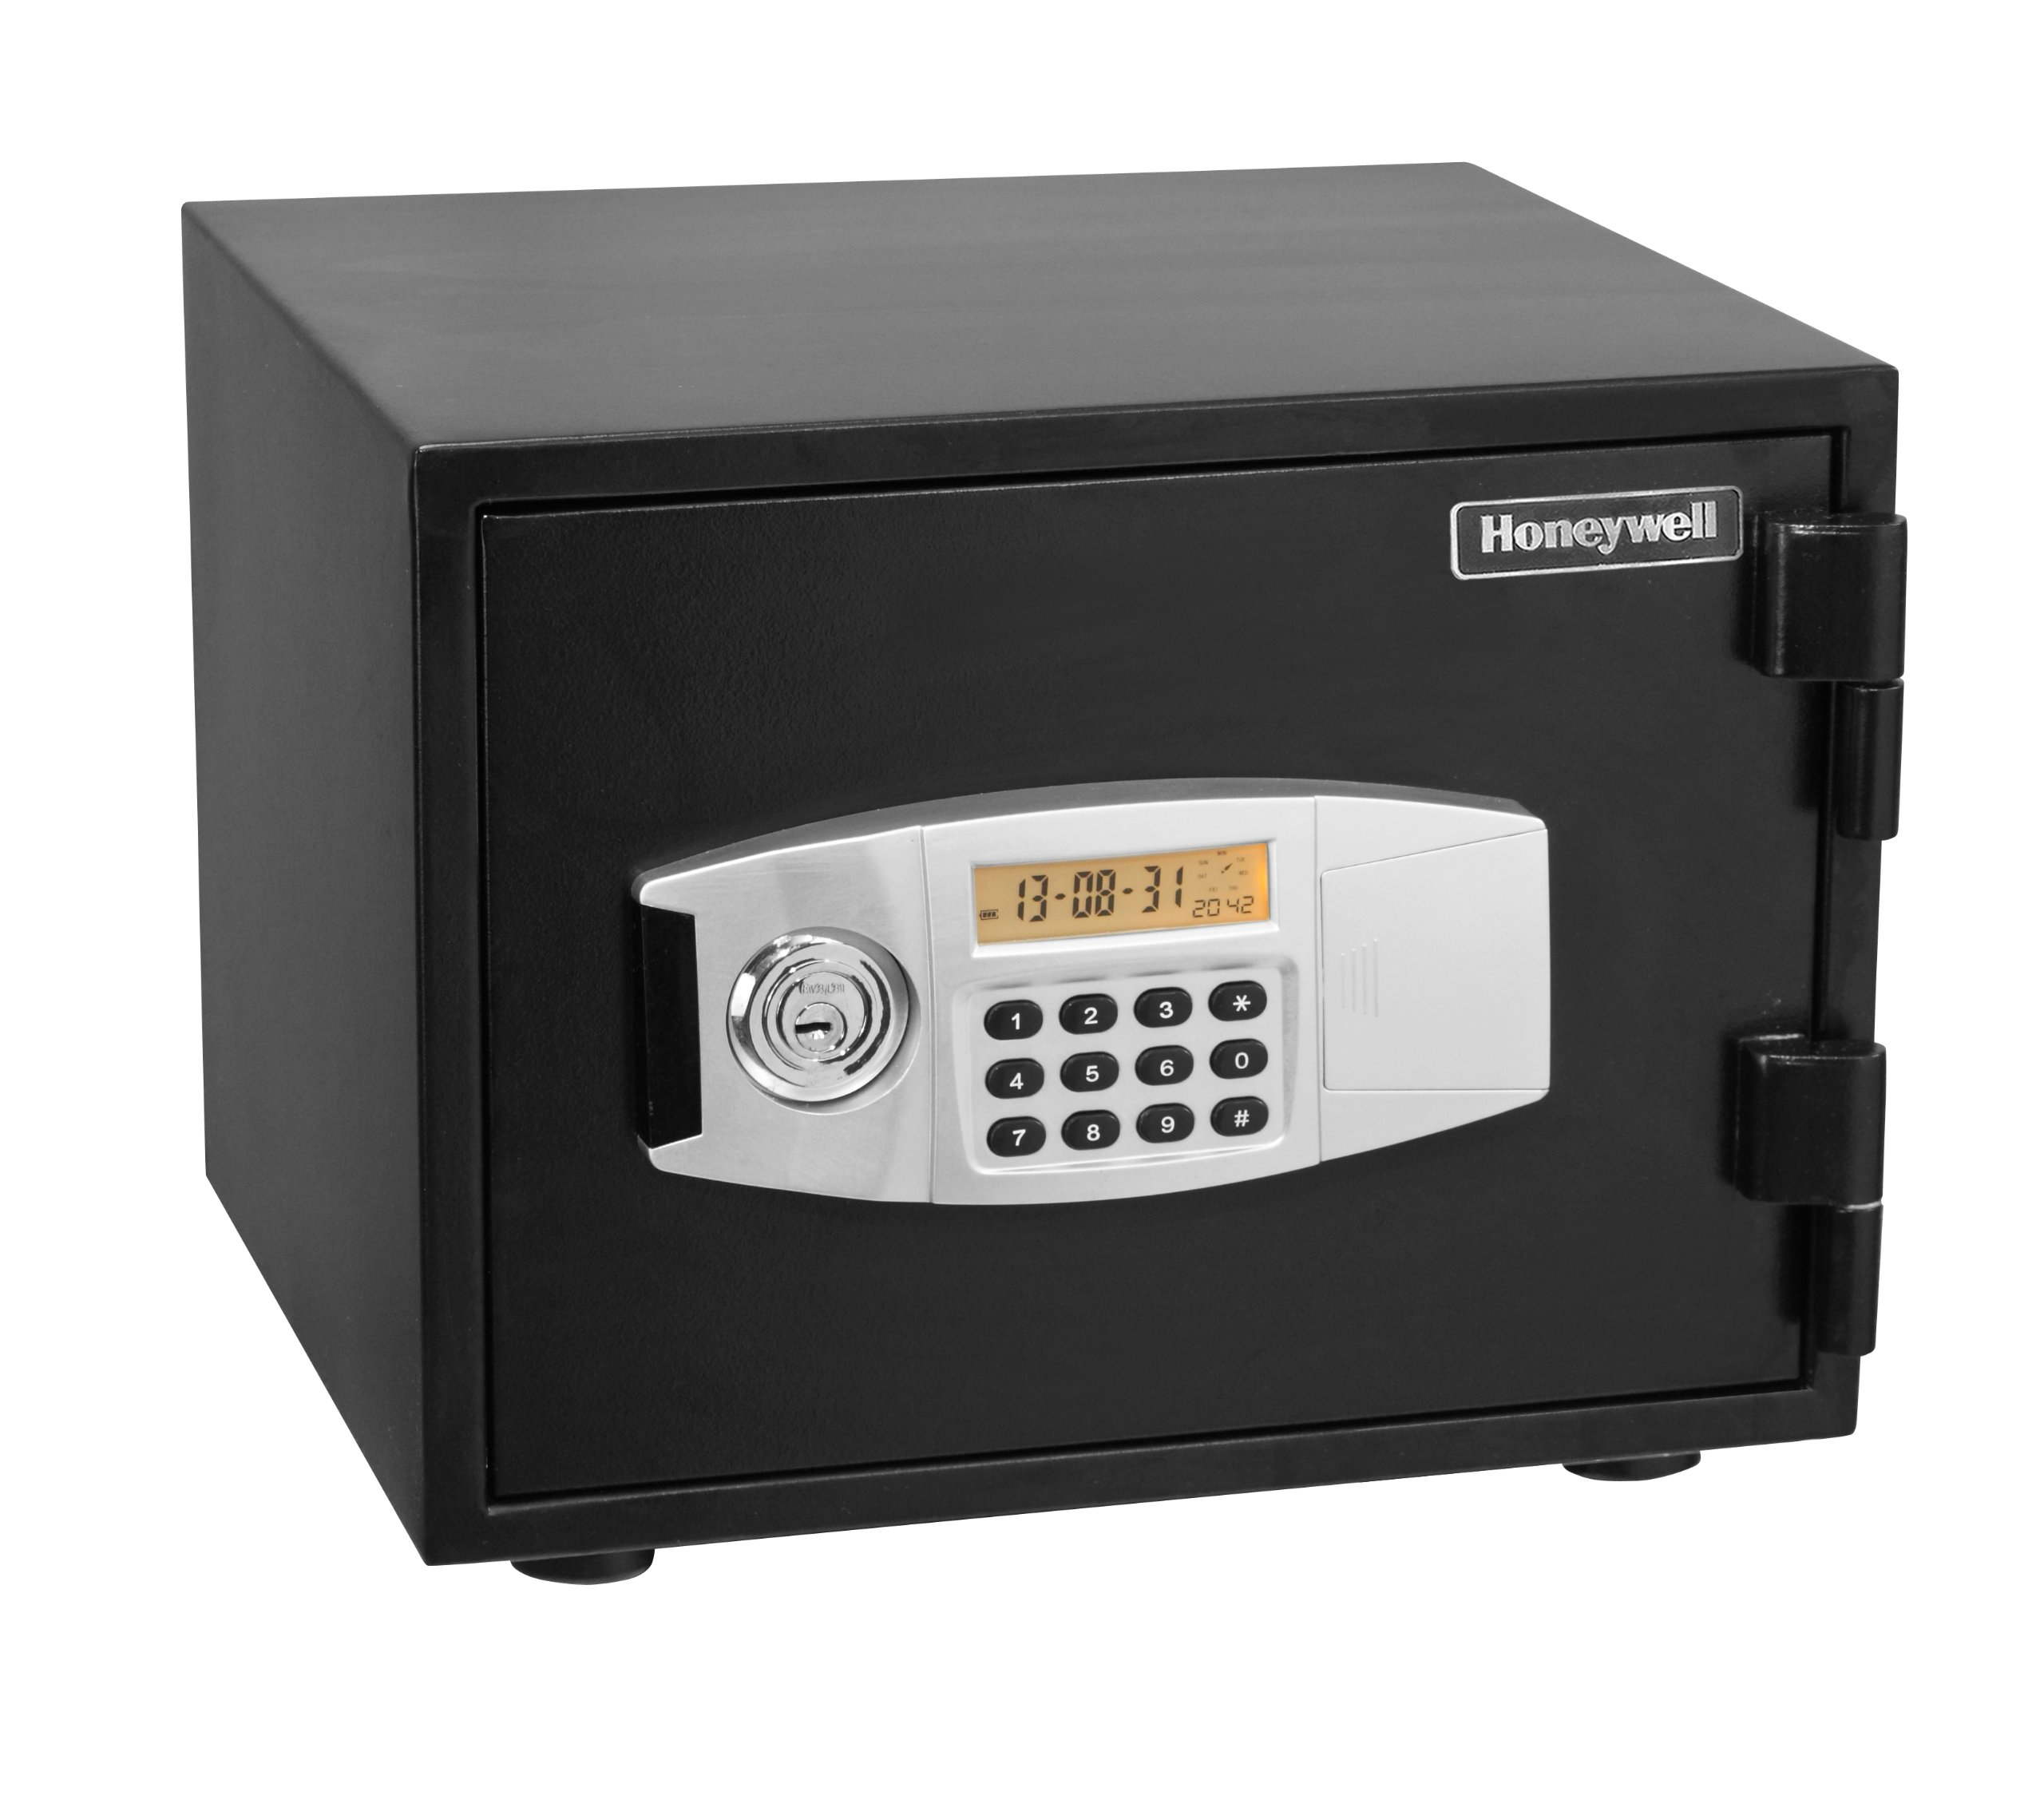 Honeywell 2111 Steel Fireproof Security Safe with Dual Digital Lock and Key Protection, 0.52-Cubic Feet, Black